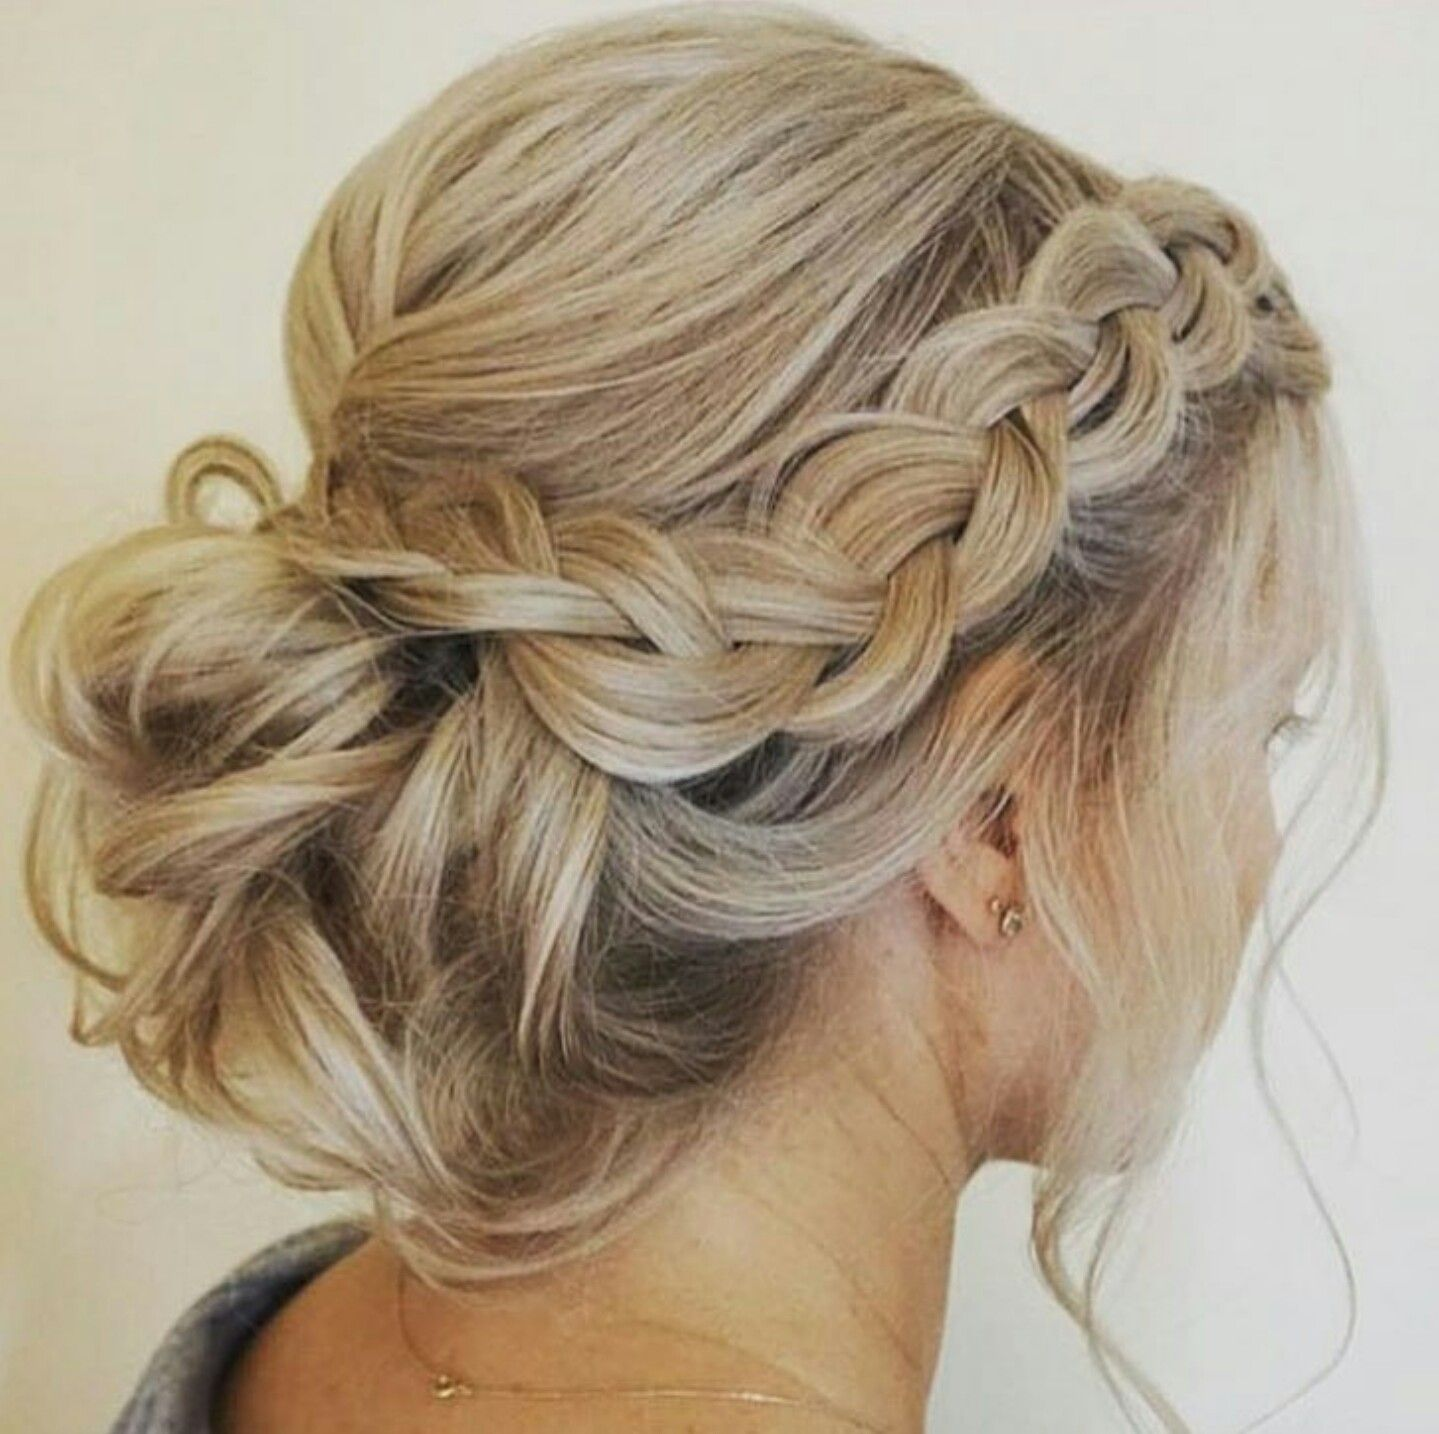 pin by julianne may z on made.the.cut | wedding hairstyles